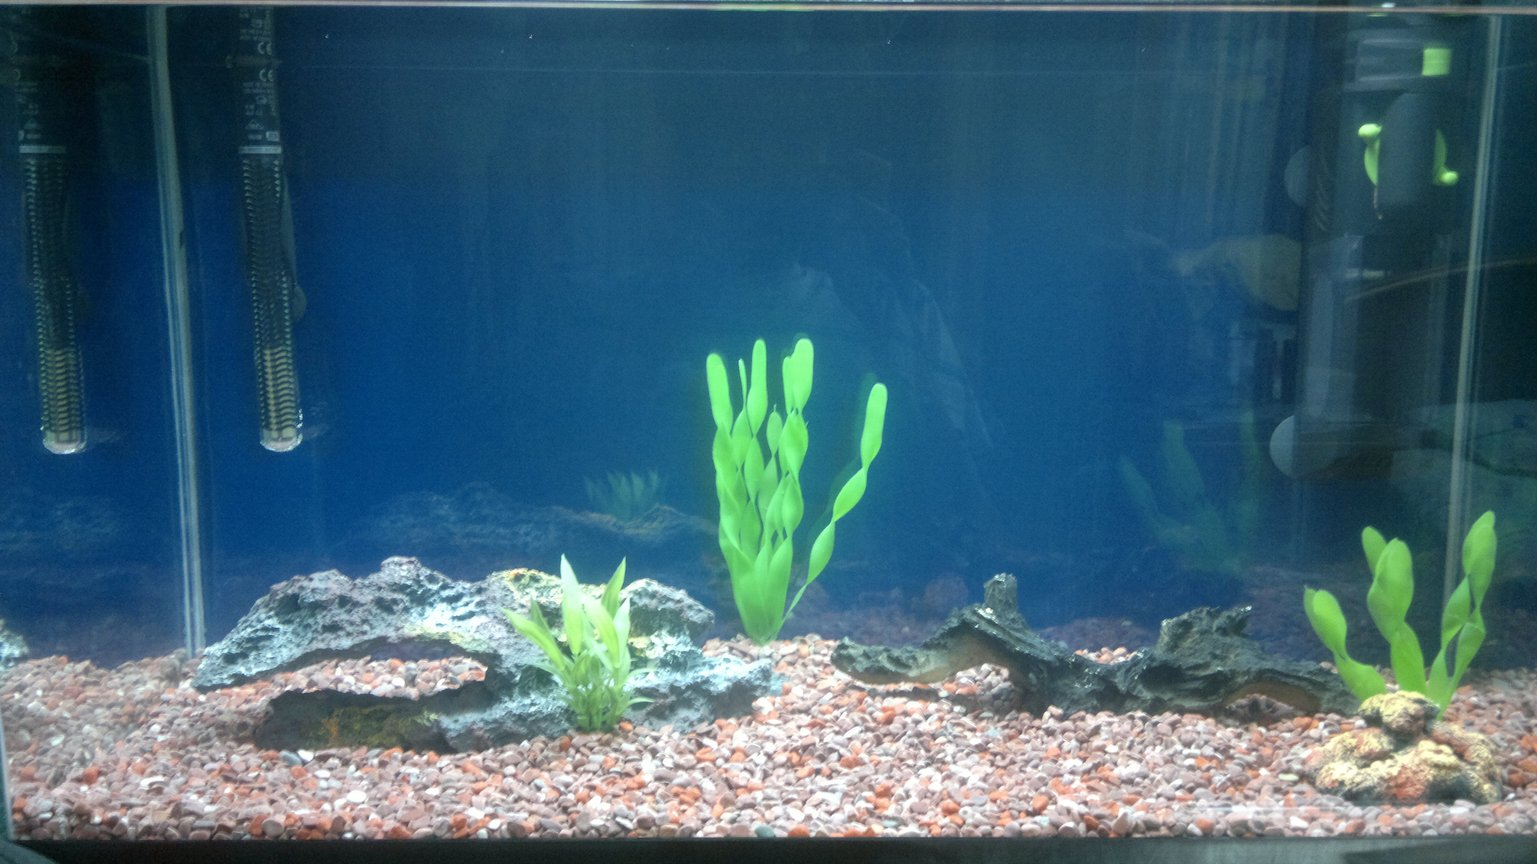 fish tank picture - My Fish tank before adding any fish during the waiting period for the useful bacteria to settle in.